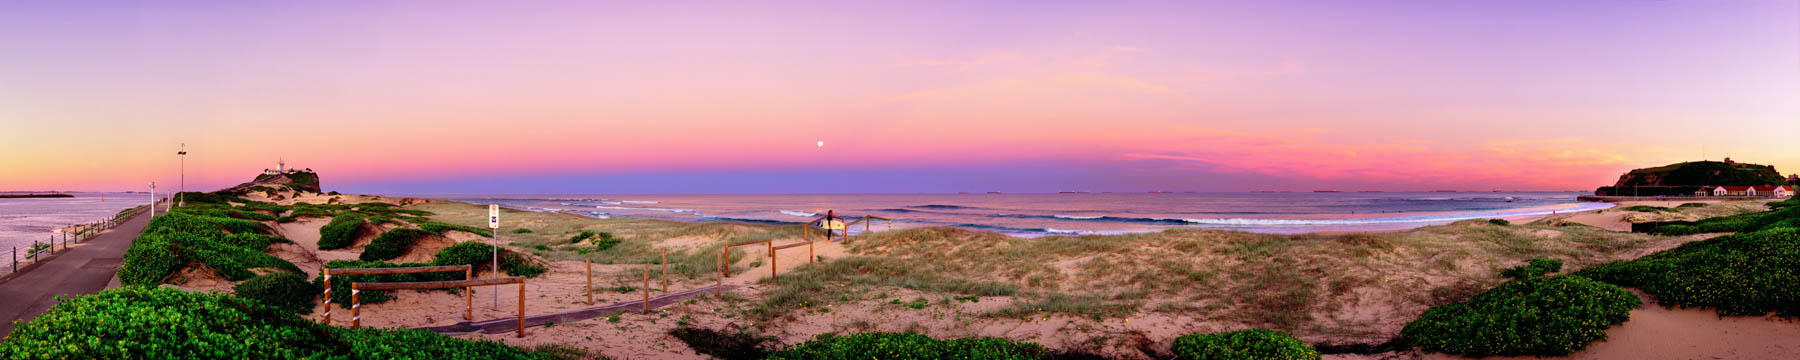 Full moon rising over Nobby's Neach, Newcastle, NSW, Australia.